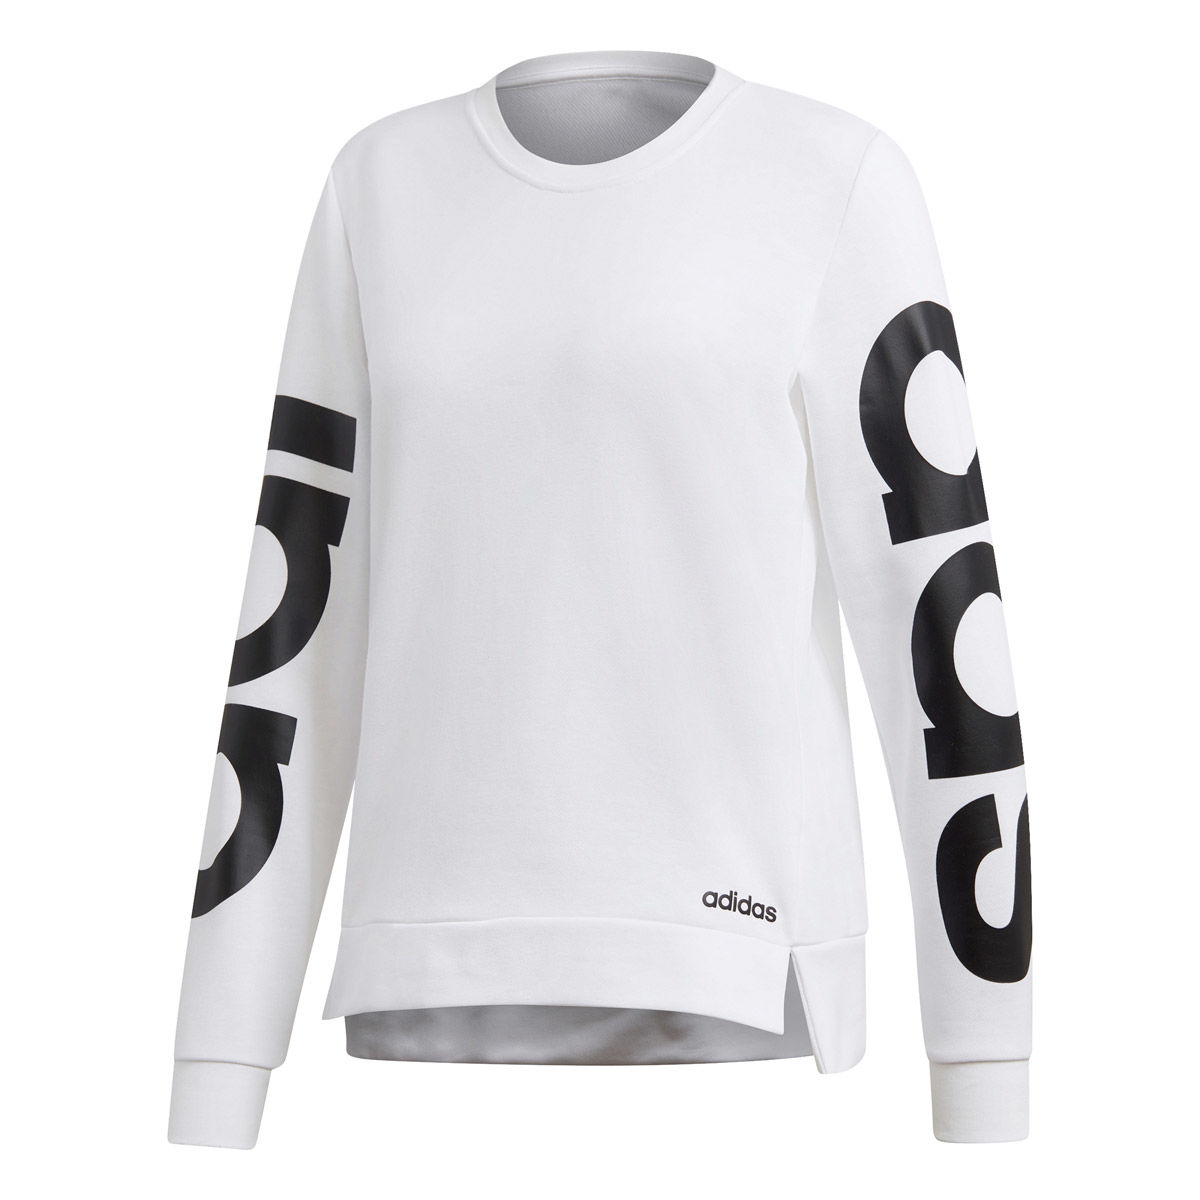 adidas Essentials Womens Long Sleeve Branded Crew